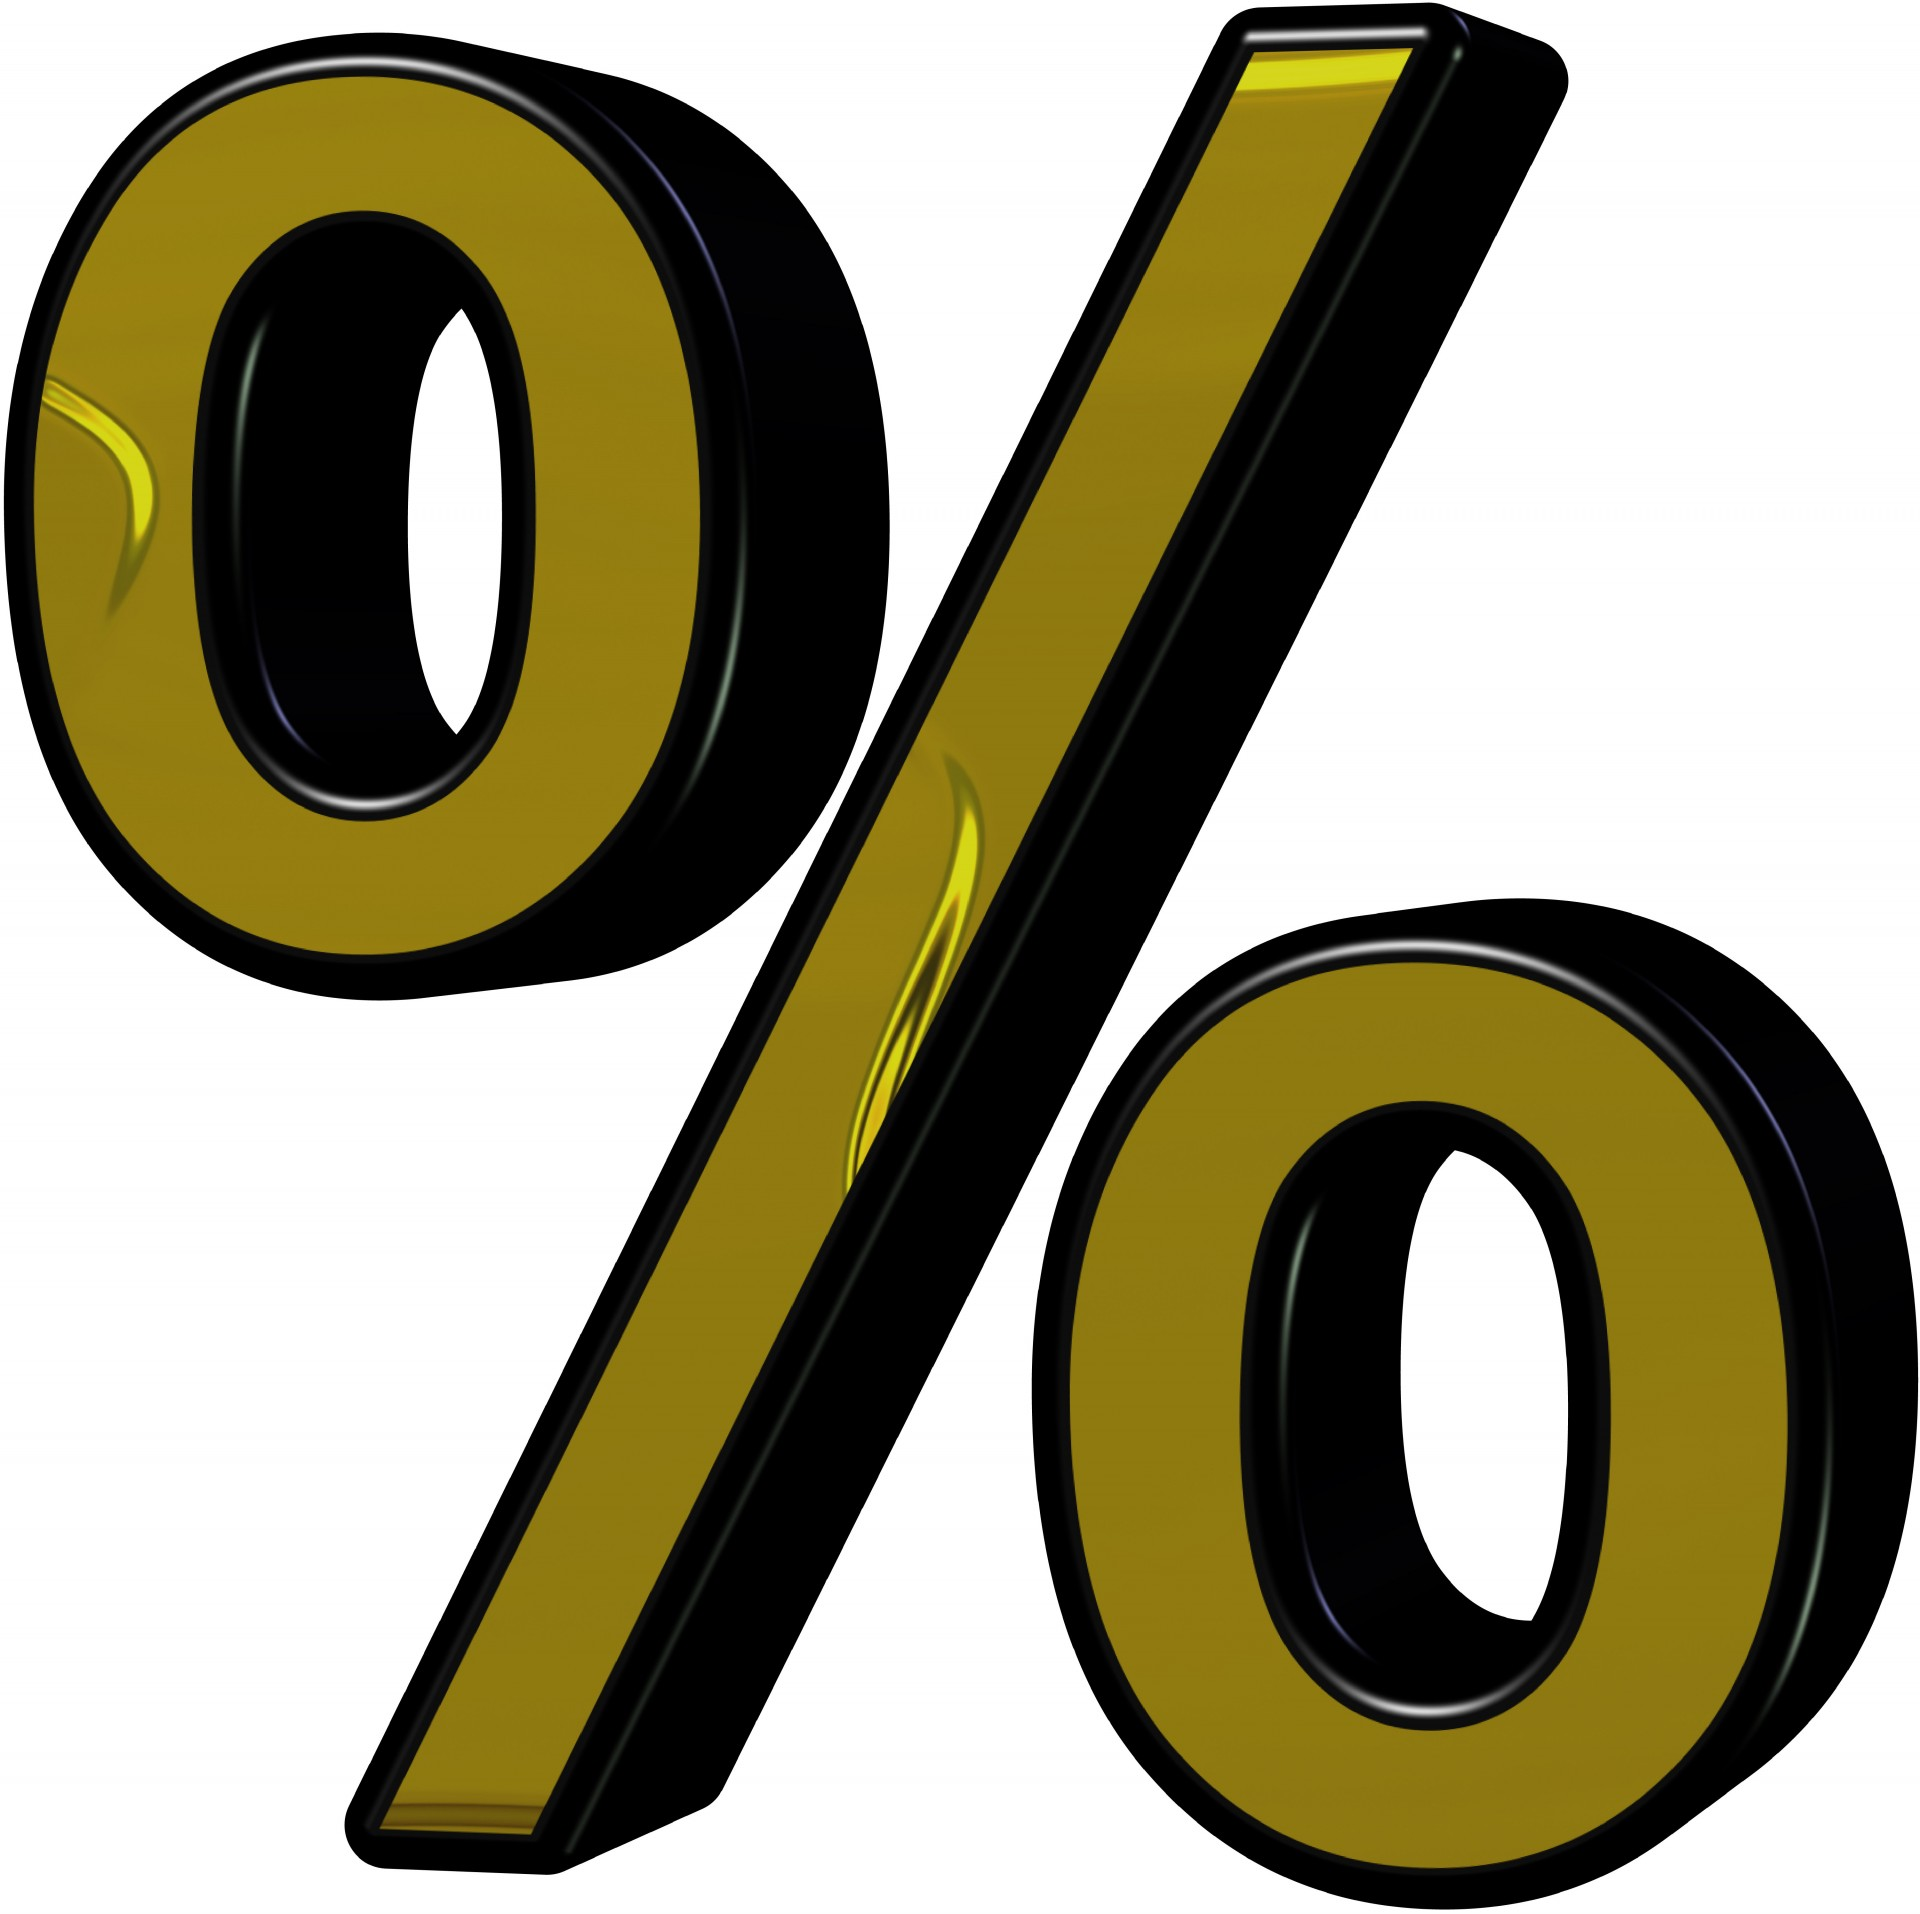 Percent sign for Mortgage Rates